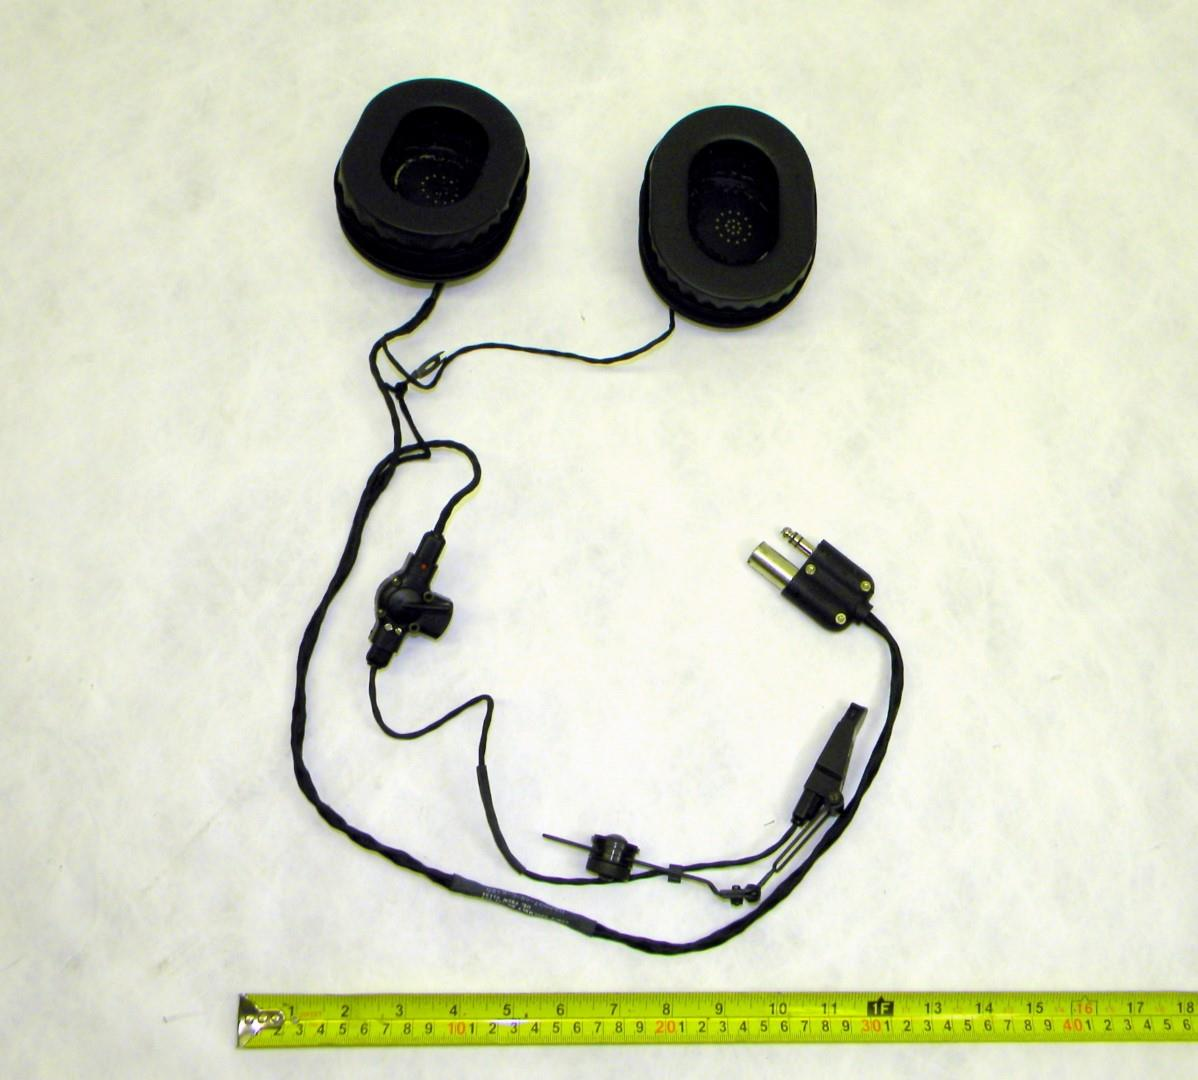 RAD-238 | 5965-01-230-2351 Headset Microphone for Military Communications Equipment. NOS (2).JPG